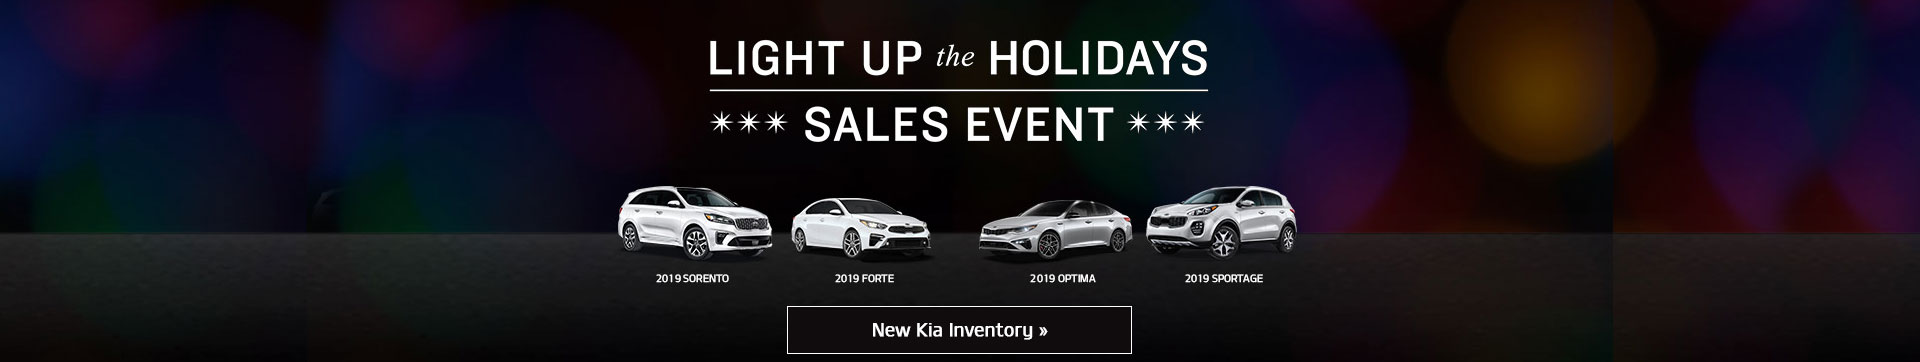 Light Up The Holidays Sales Event